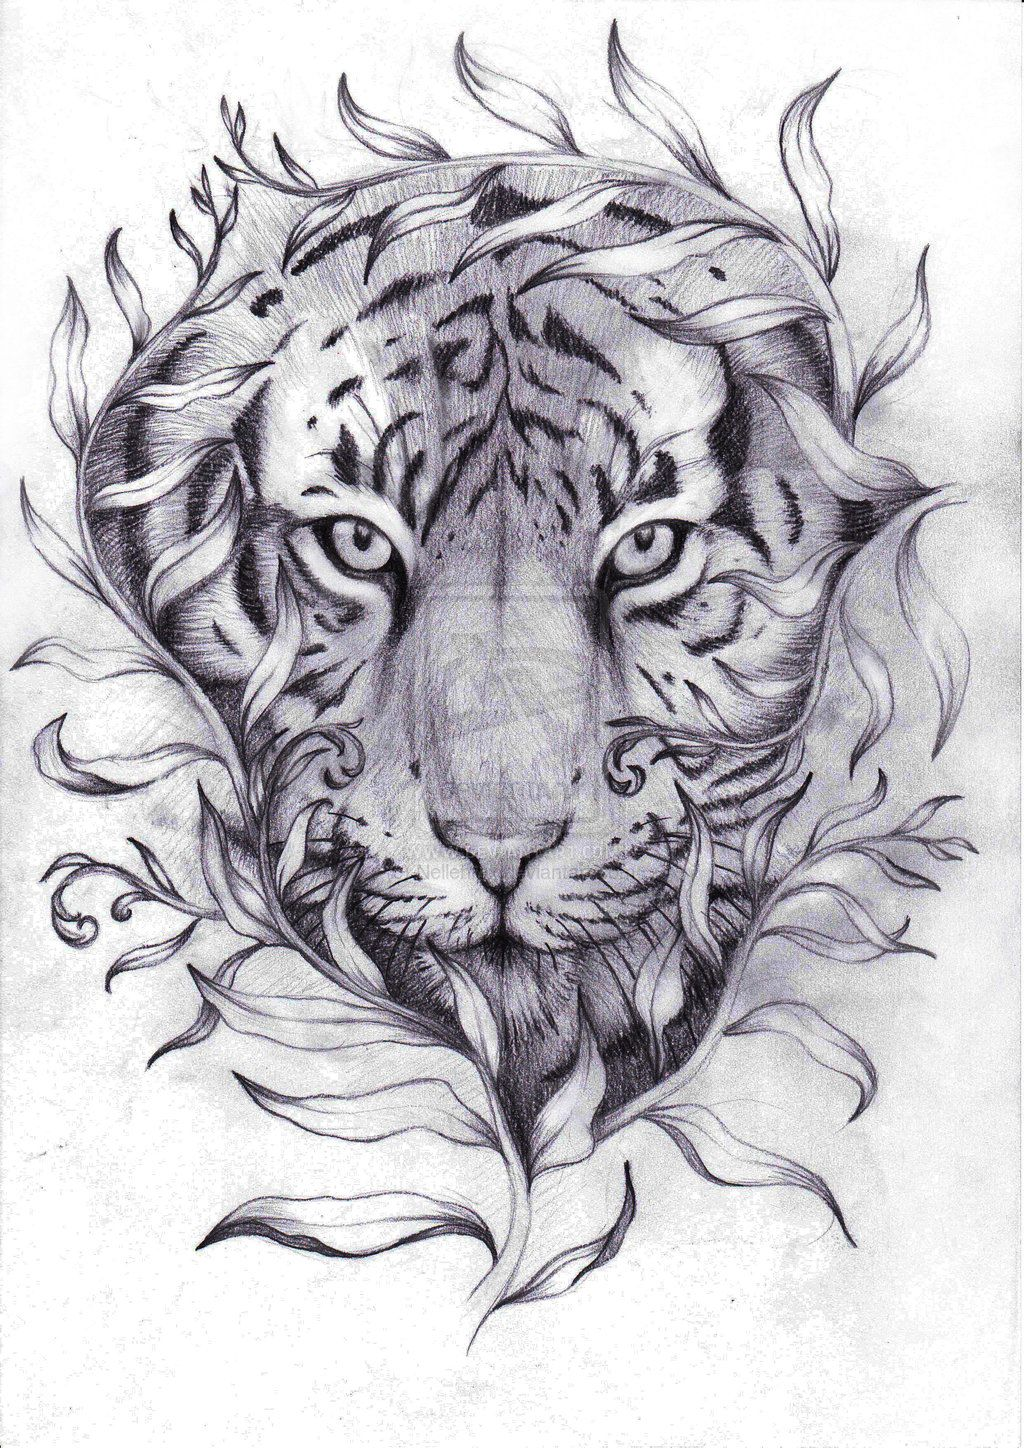 tiger tattoo designs google search coloring pinterest tiger tattoo design tiger tattoo. Black Bedroom Furniture Sets. Home Design Ideas